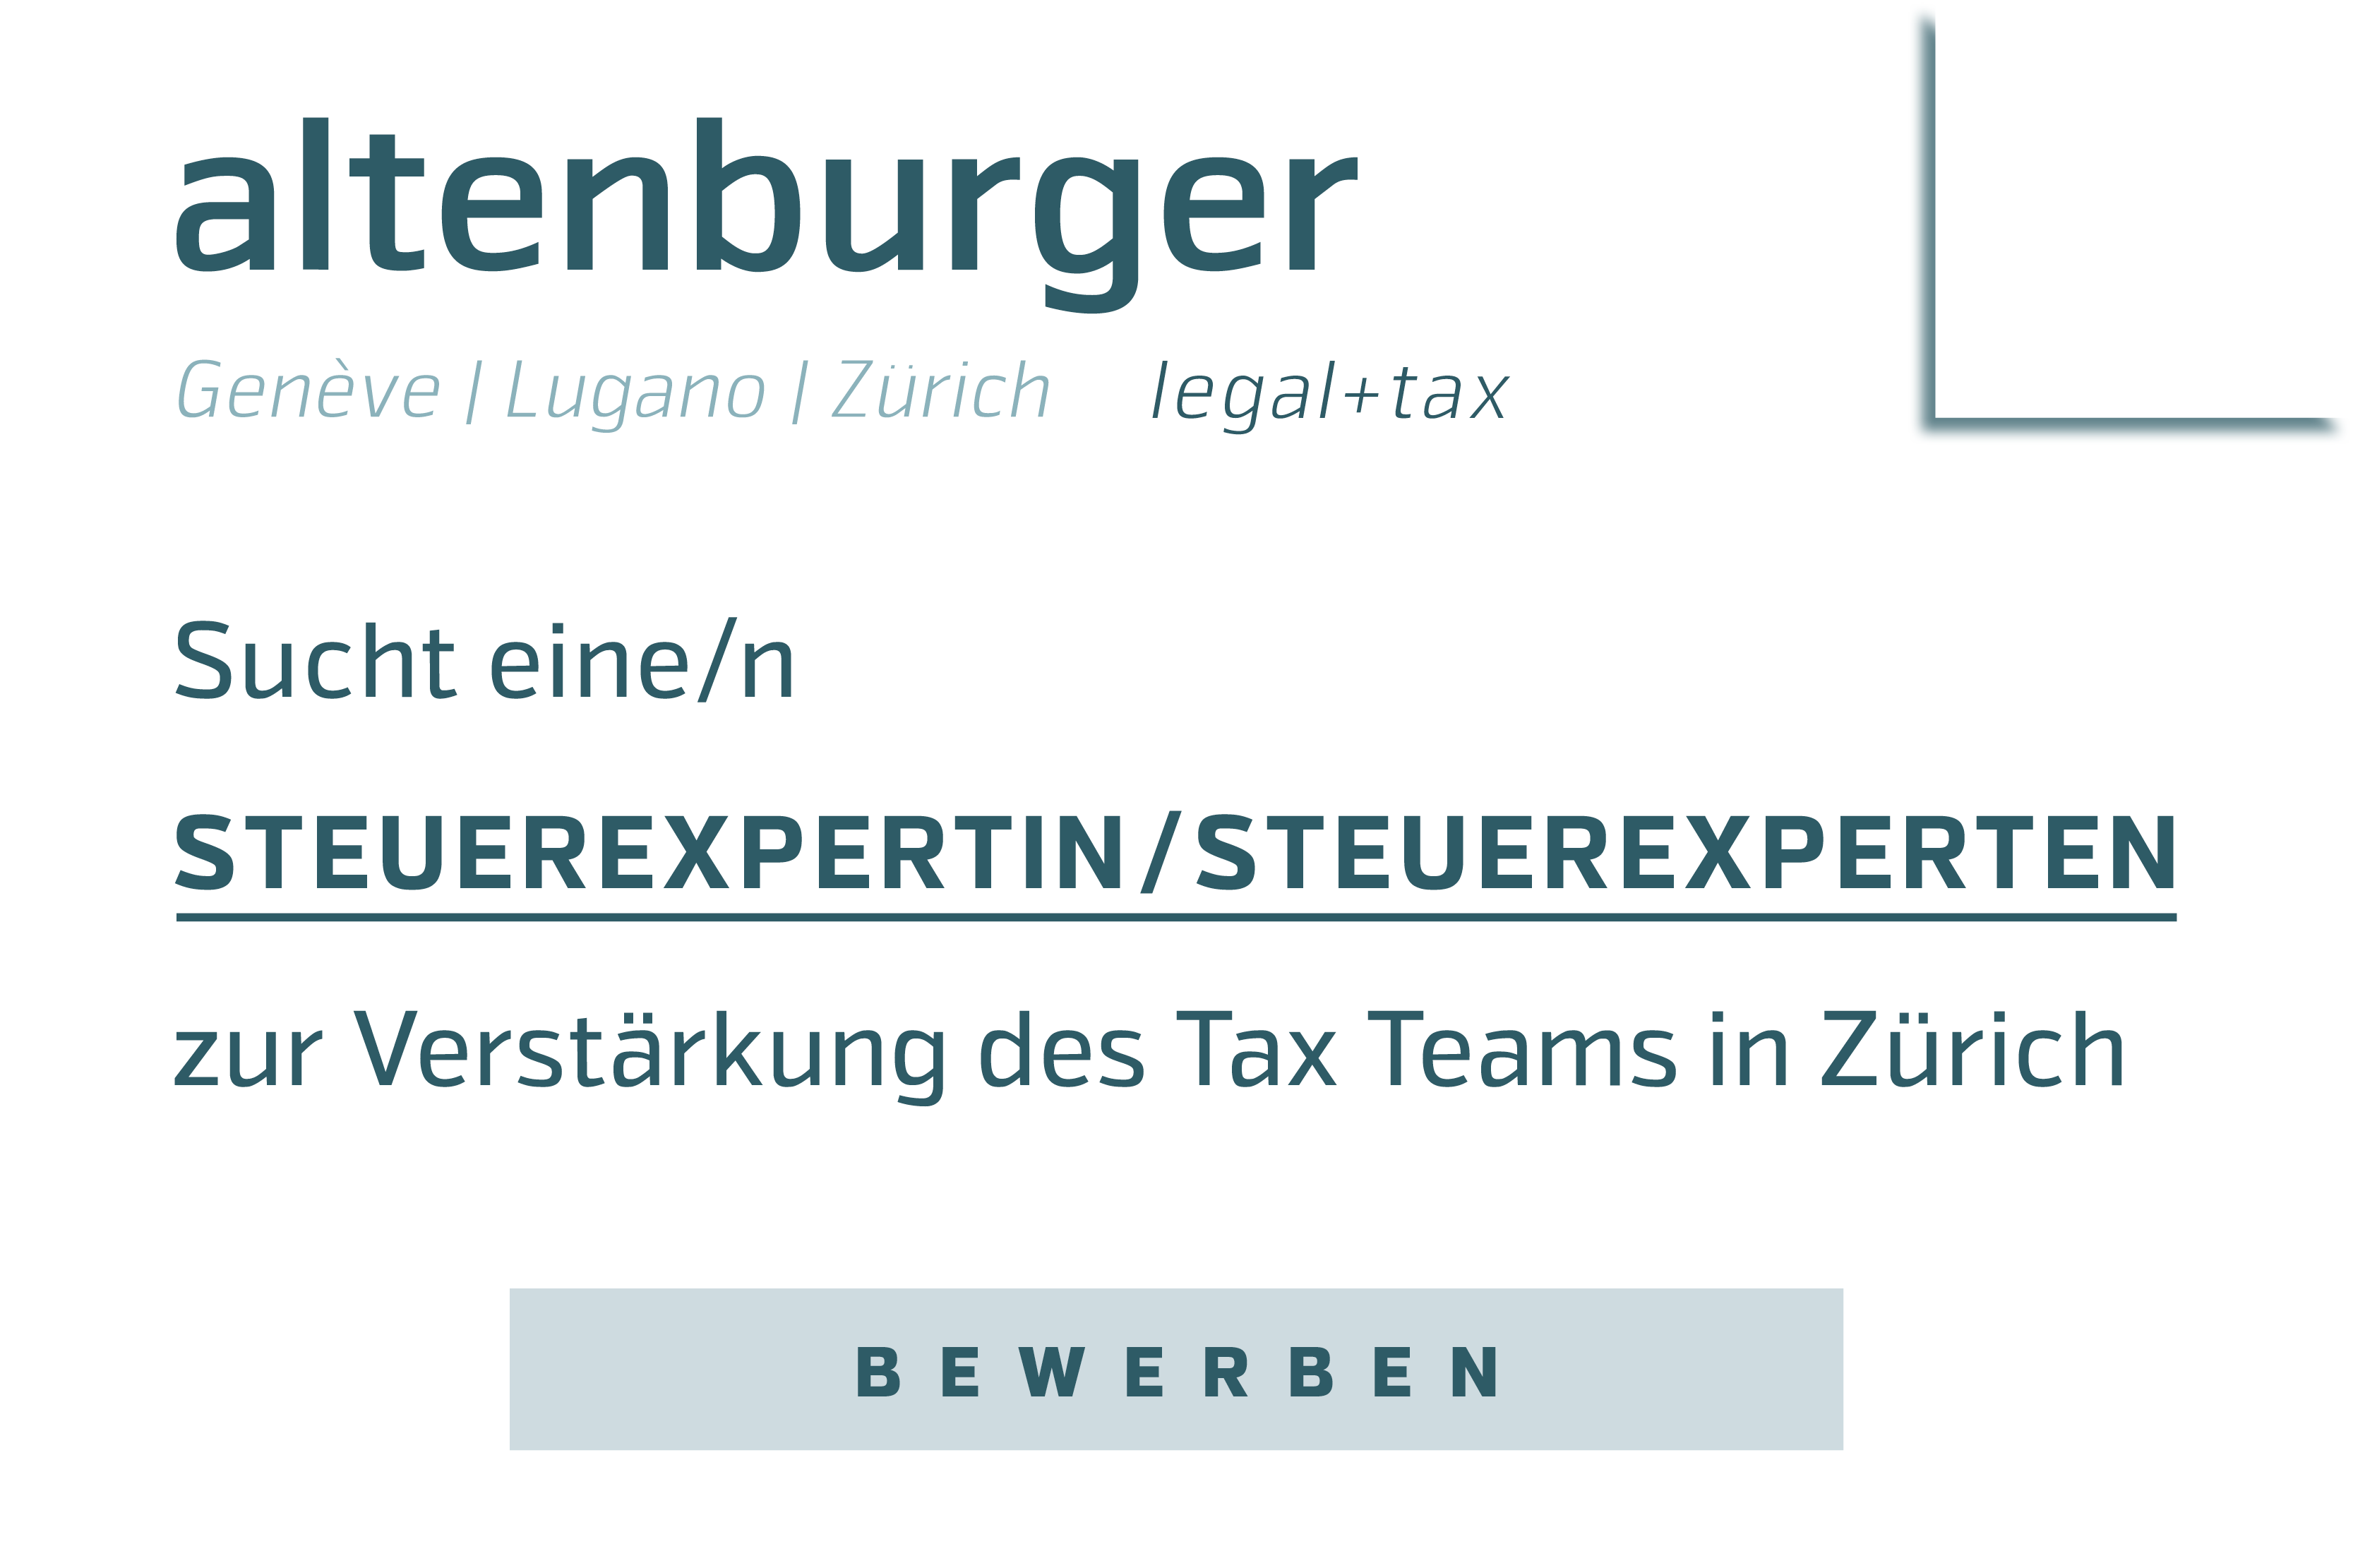 https://www.altenburger.ch/career/steuerexpertinsteuerexperte/